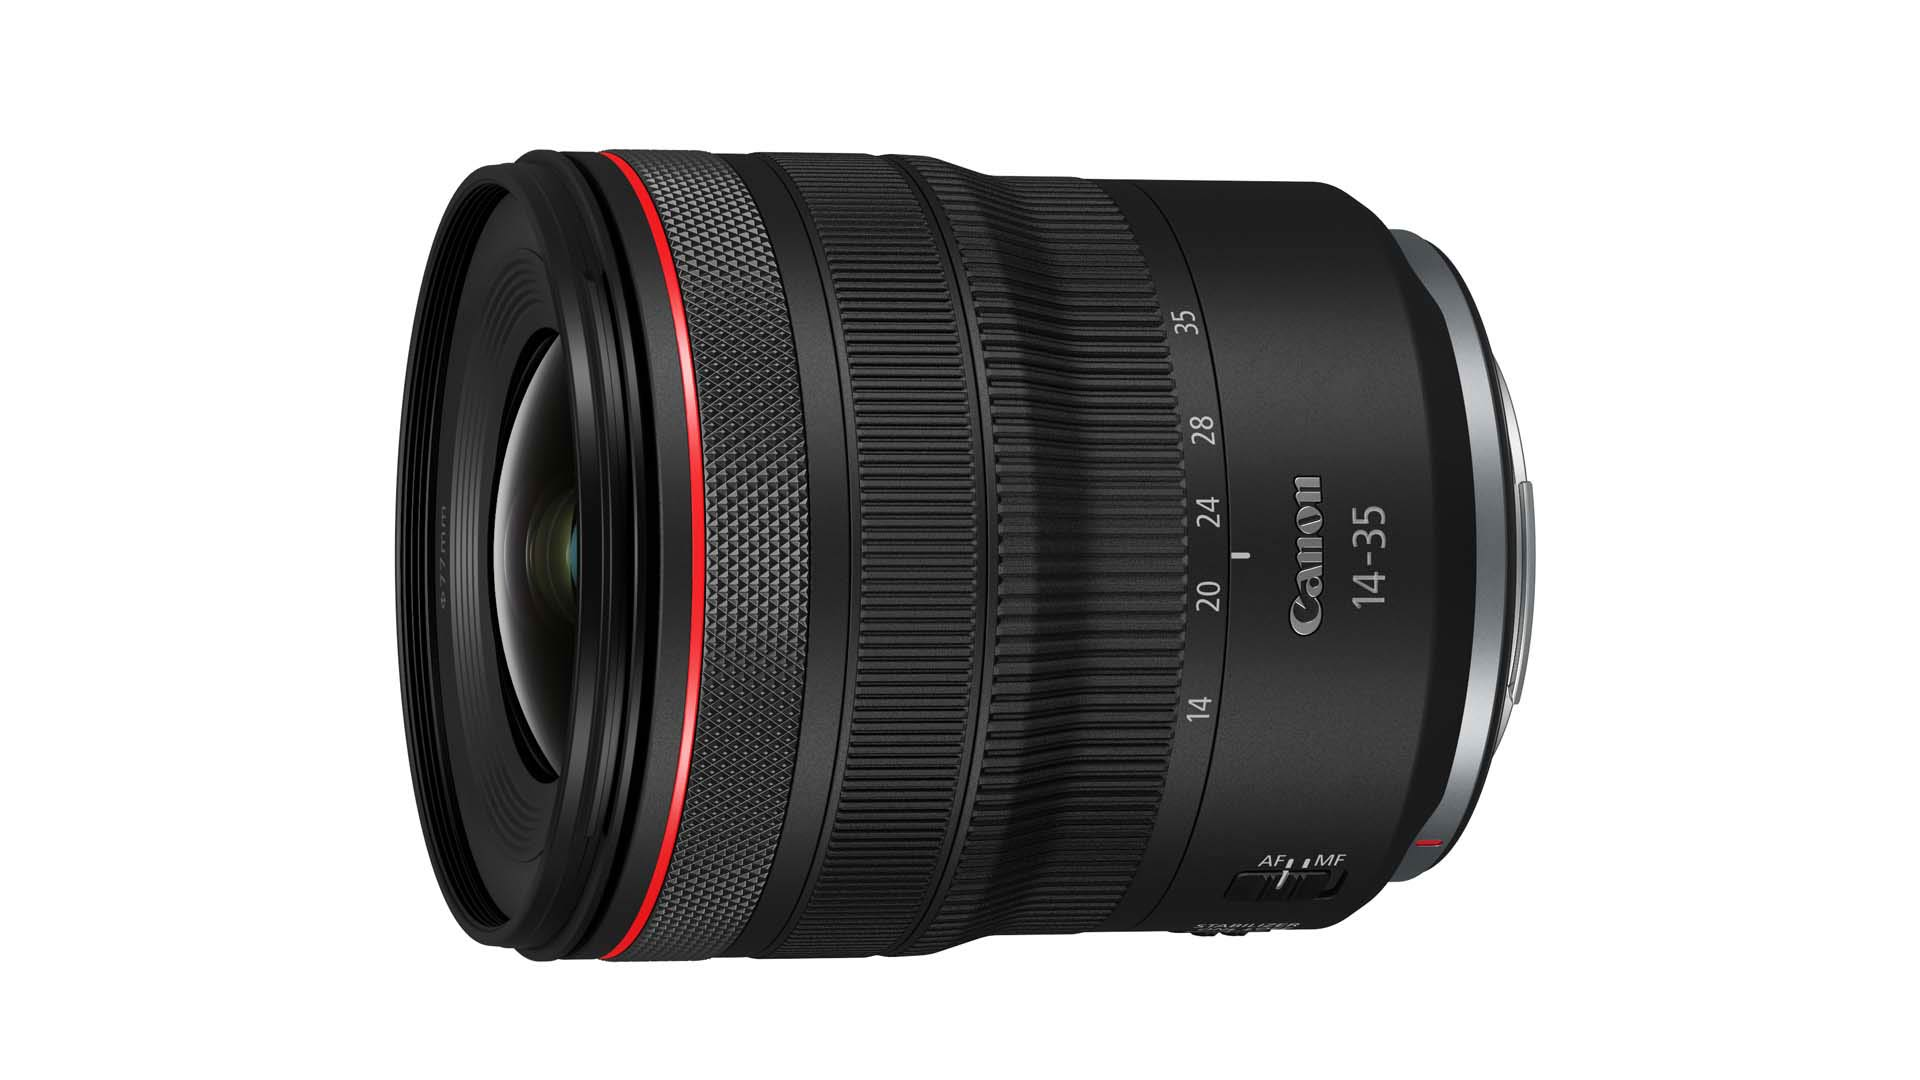 The RF14-35mm F4 L IS USM lens. Image: Canon.